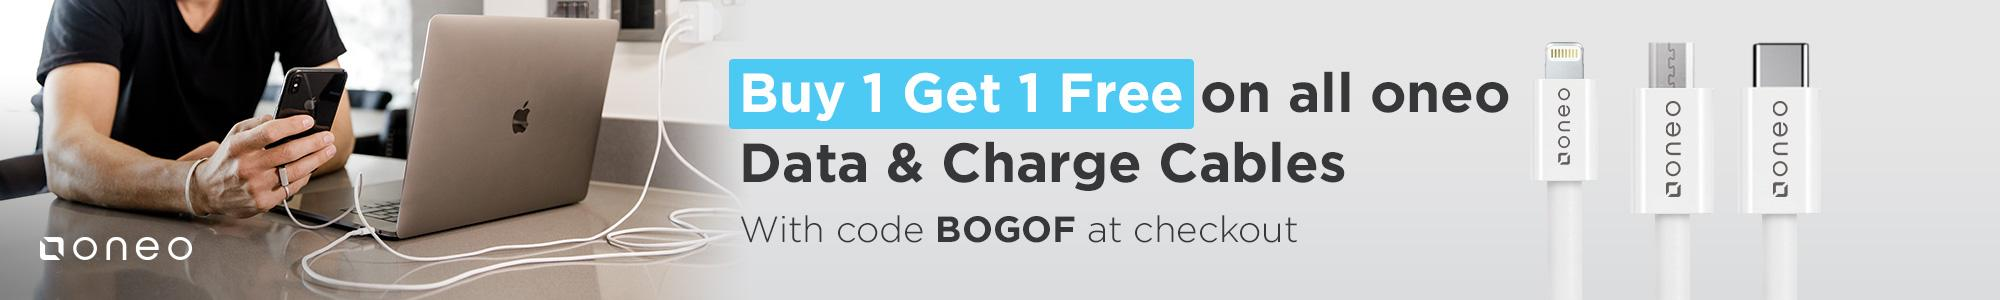 Buy 1 Get 1 Free on all oneo Data & Charging Cables Add two oneo cables and apply discount code BOGOF at cart